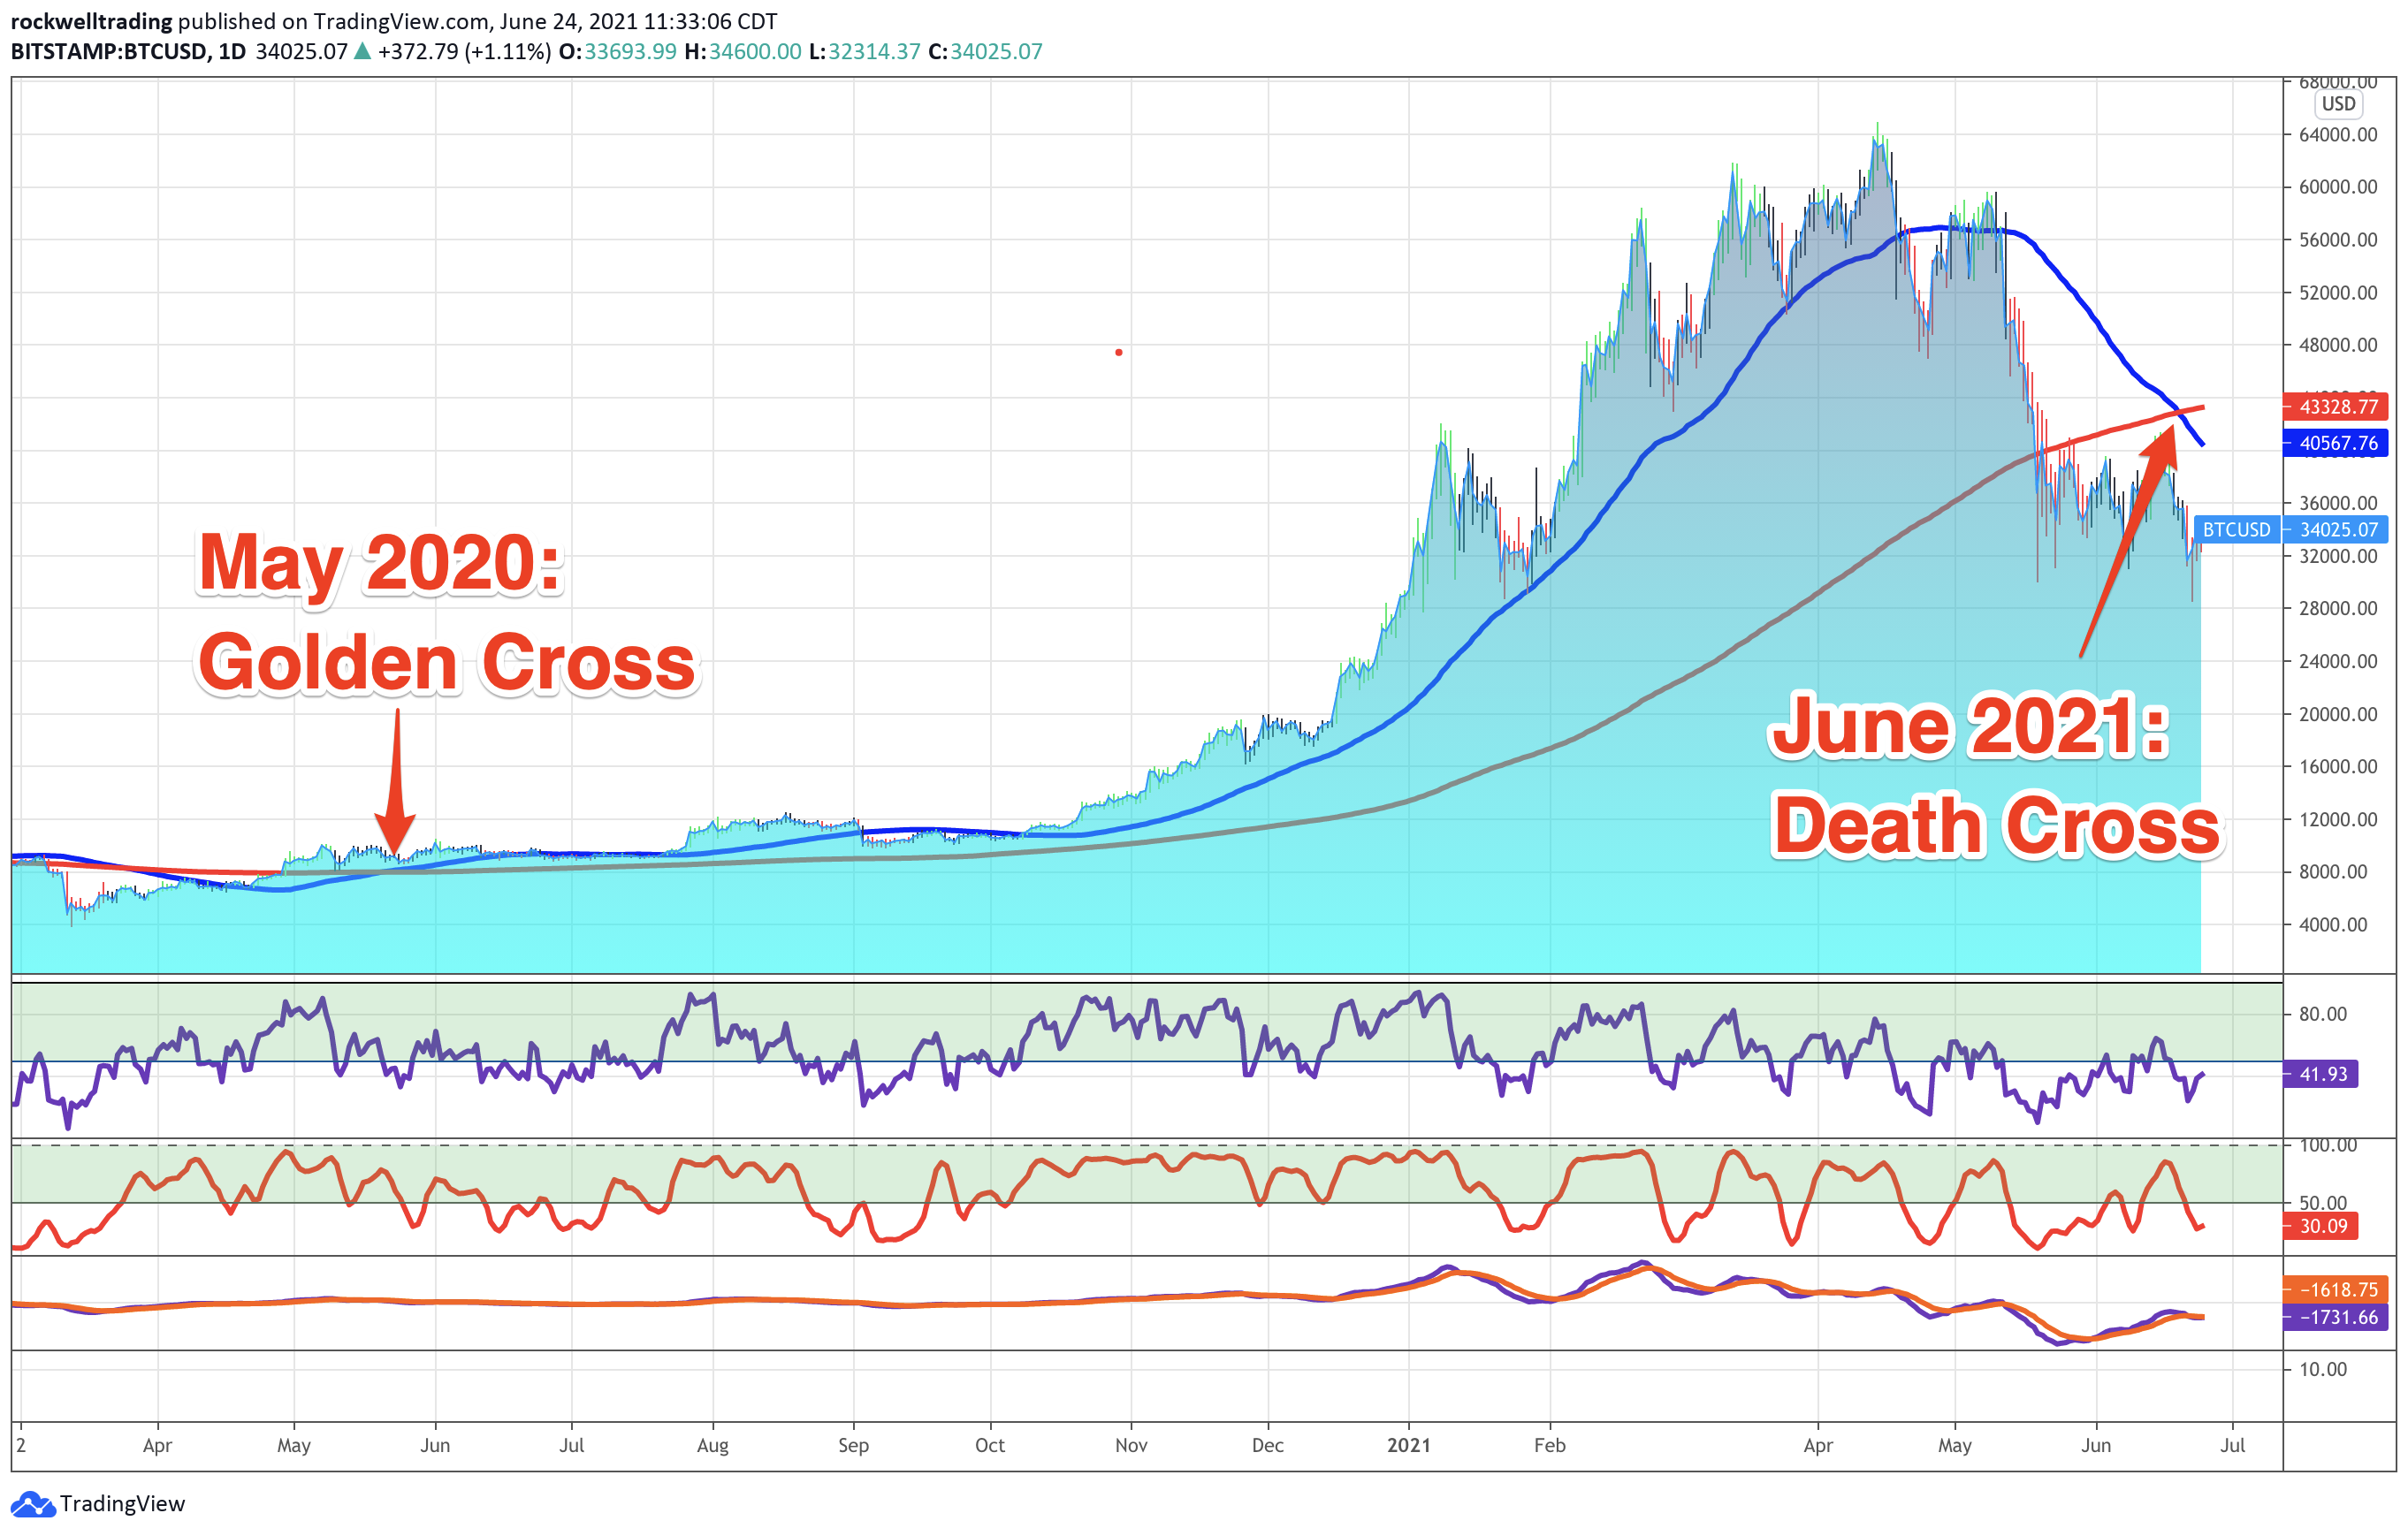 Bitcoin: May 2020 Golden Cross, June 2021 Death Cross only daily time frame